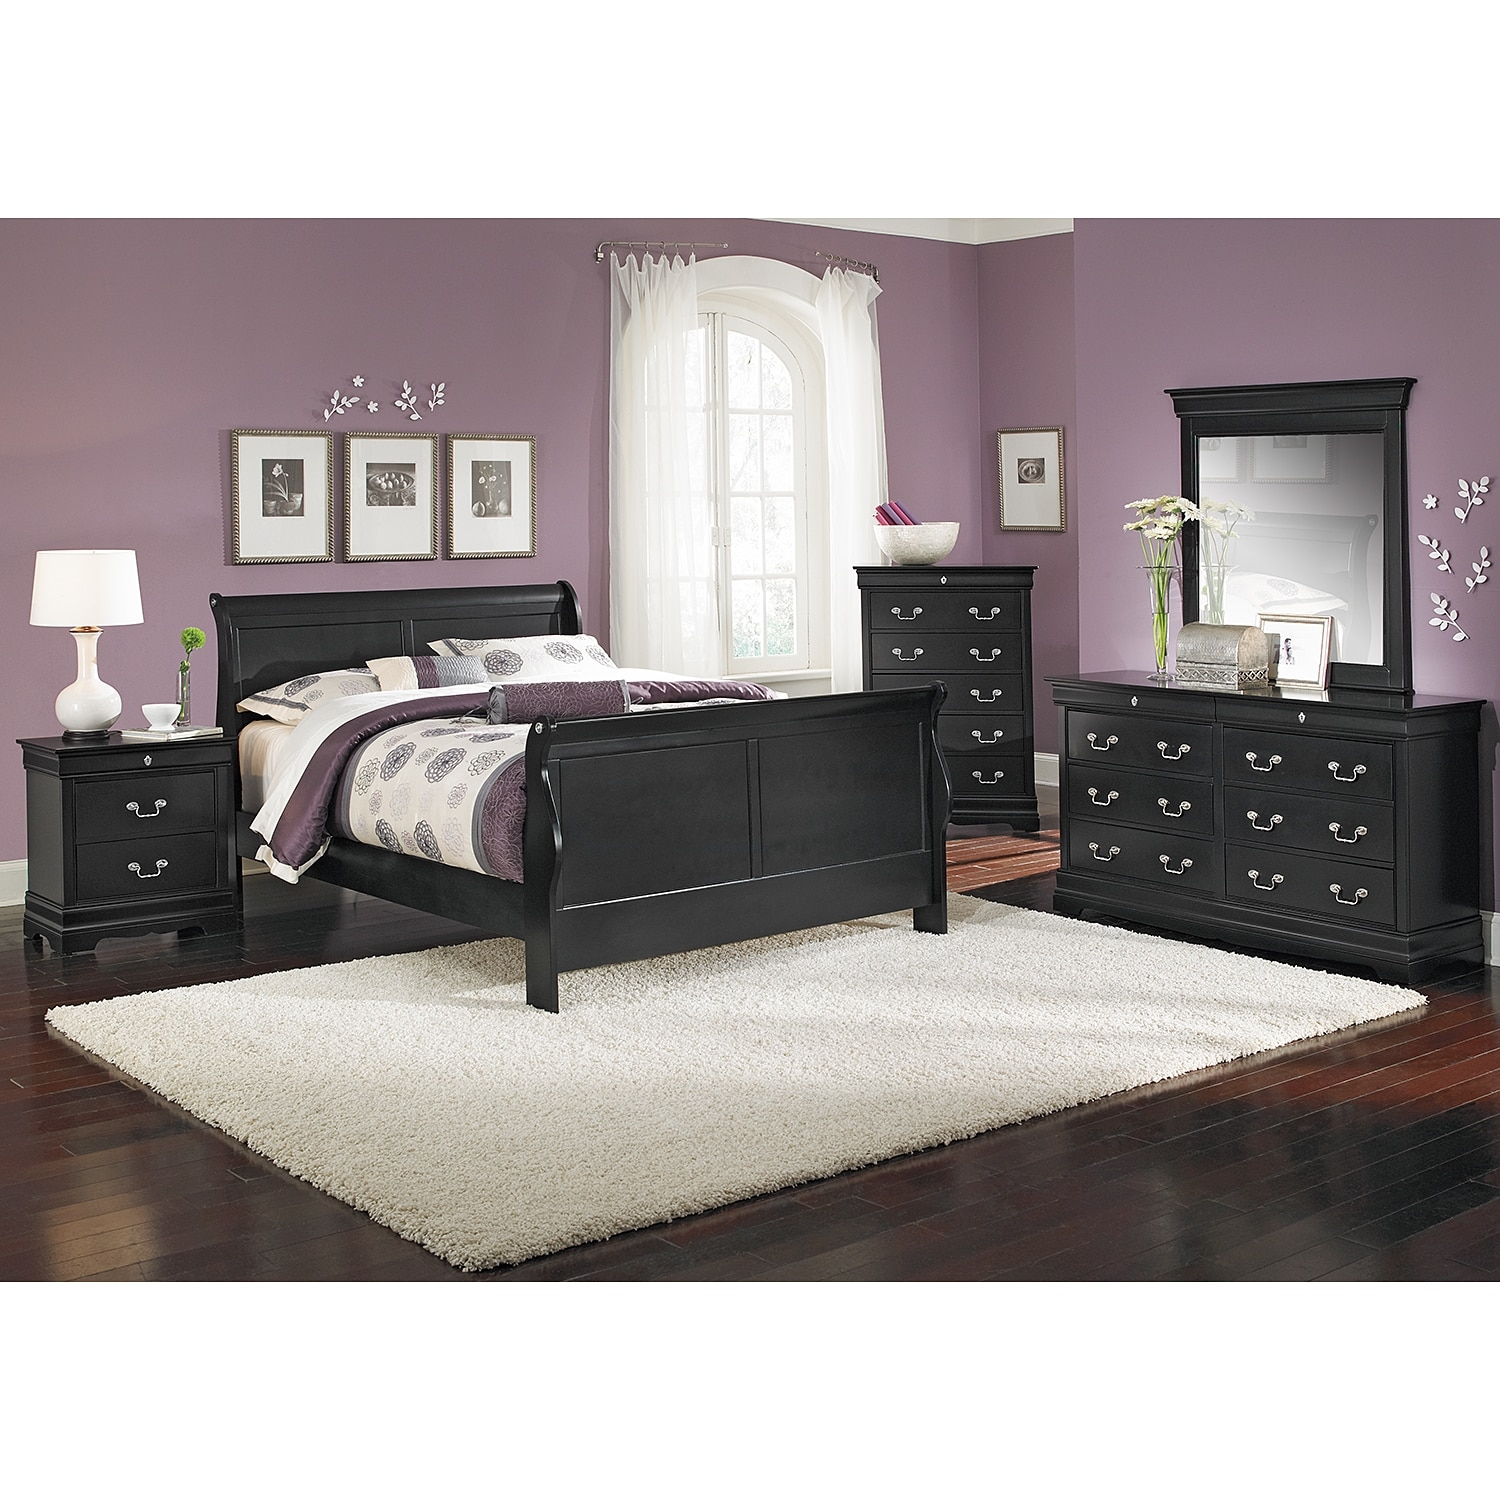 Bedroom Furniture: Neo Classic 7-Piece King Bedroom Set - Black